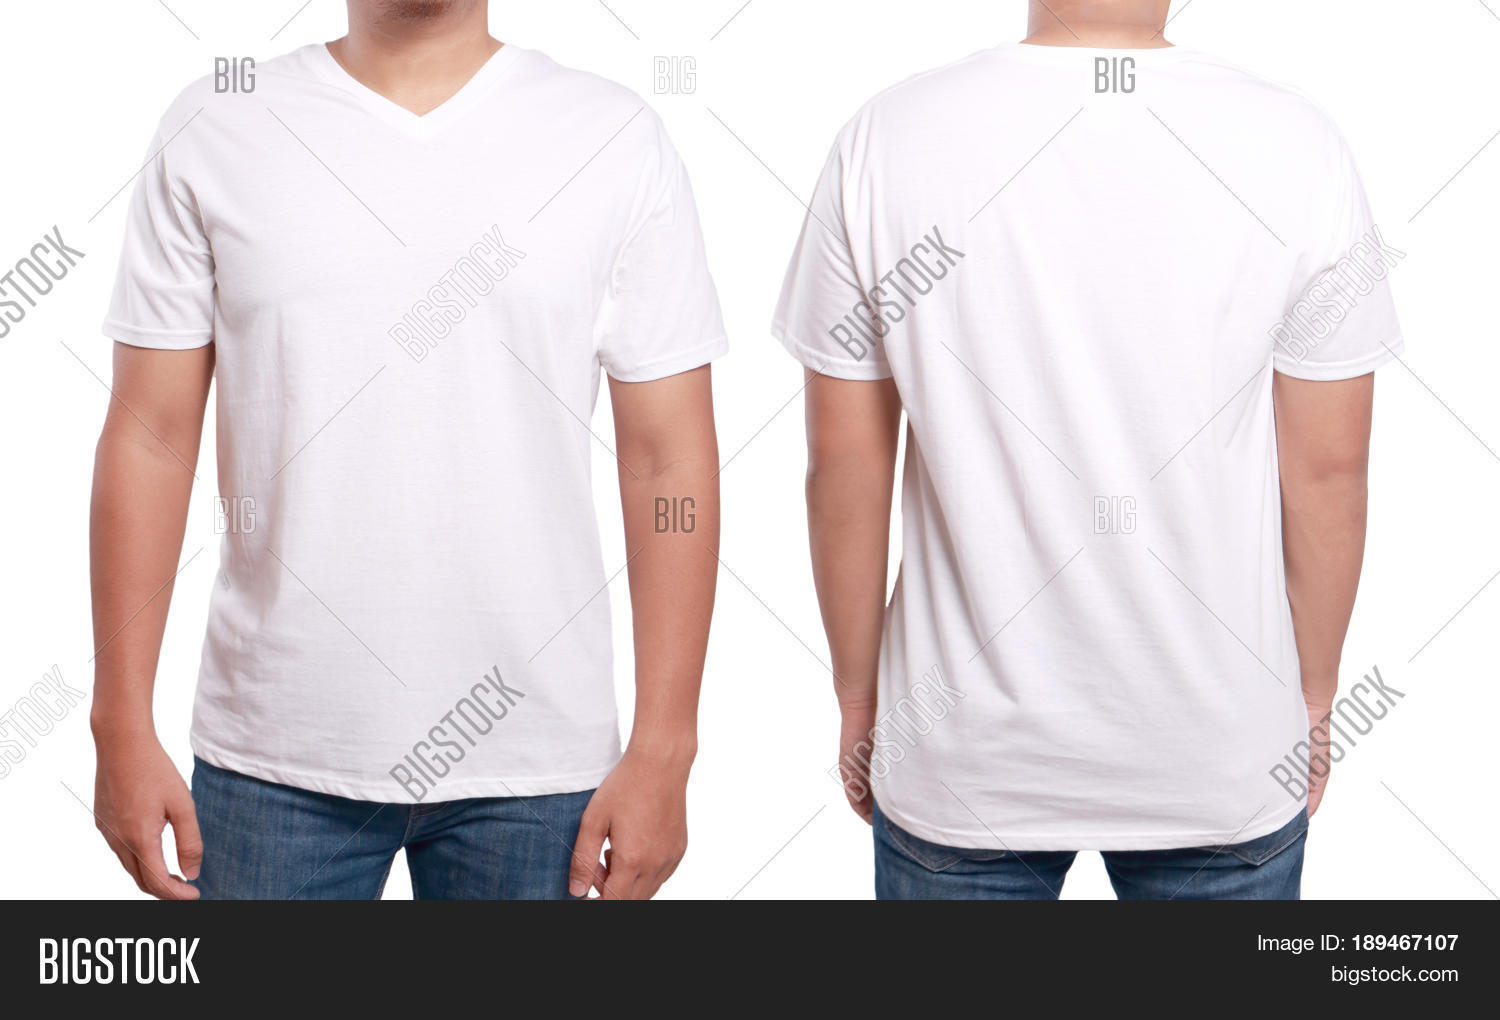 T shirt plain white front and back - White T Shirt Mock Up Front And Back View Isolated Male Model Wear Plain